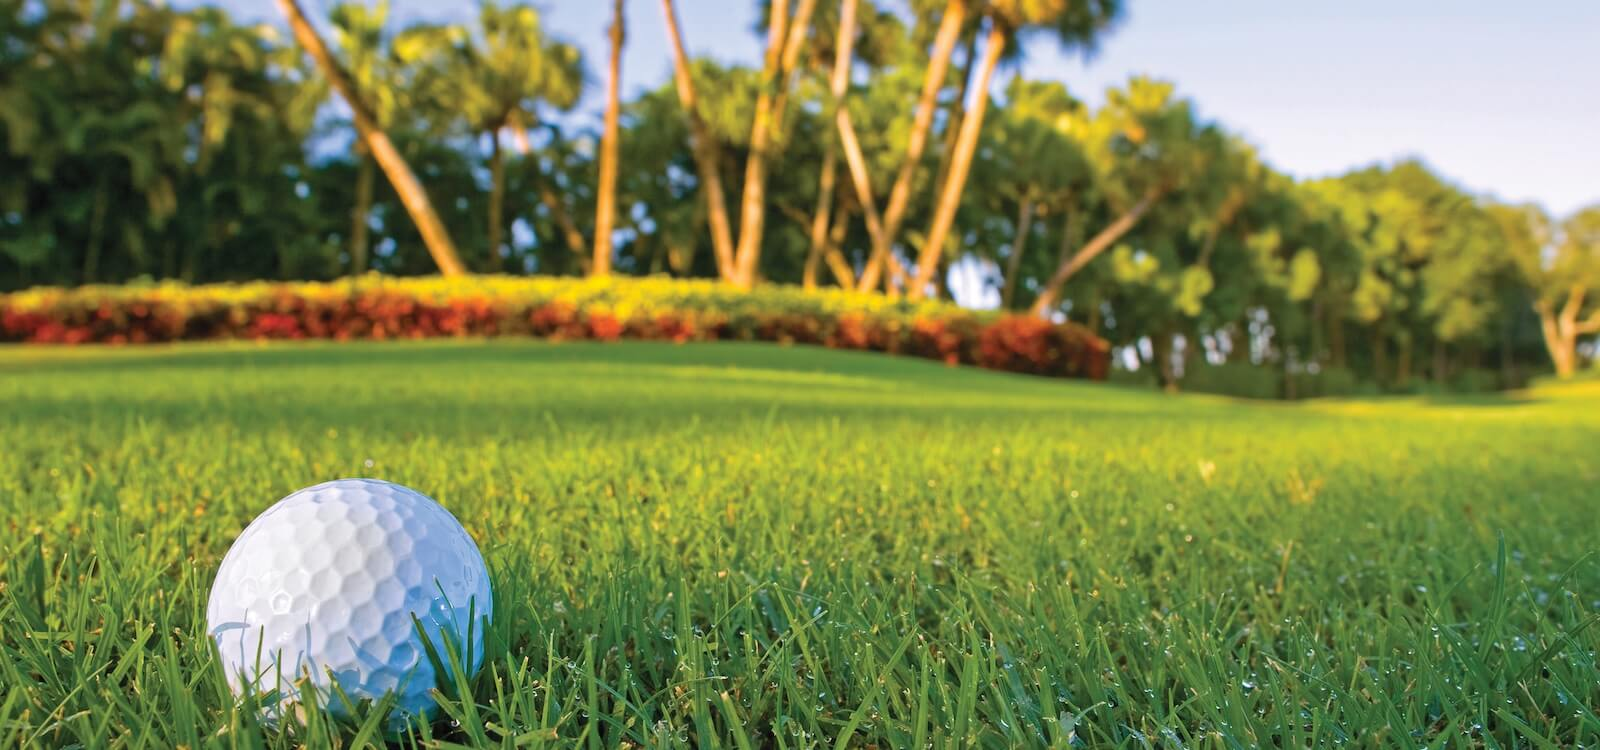 MustDo.com | Sarasota, Florida golf courses to play.